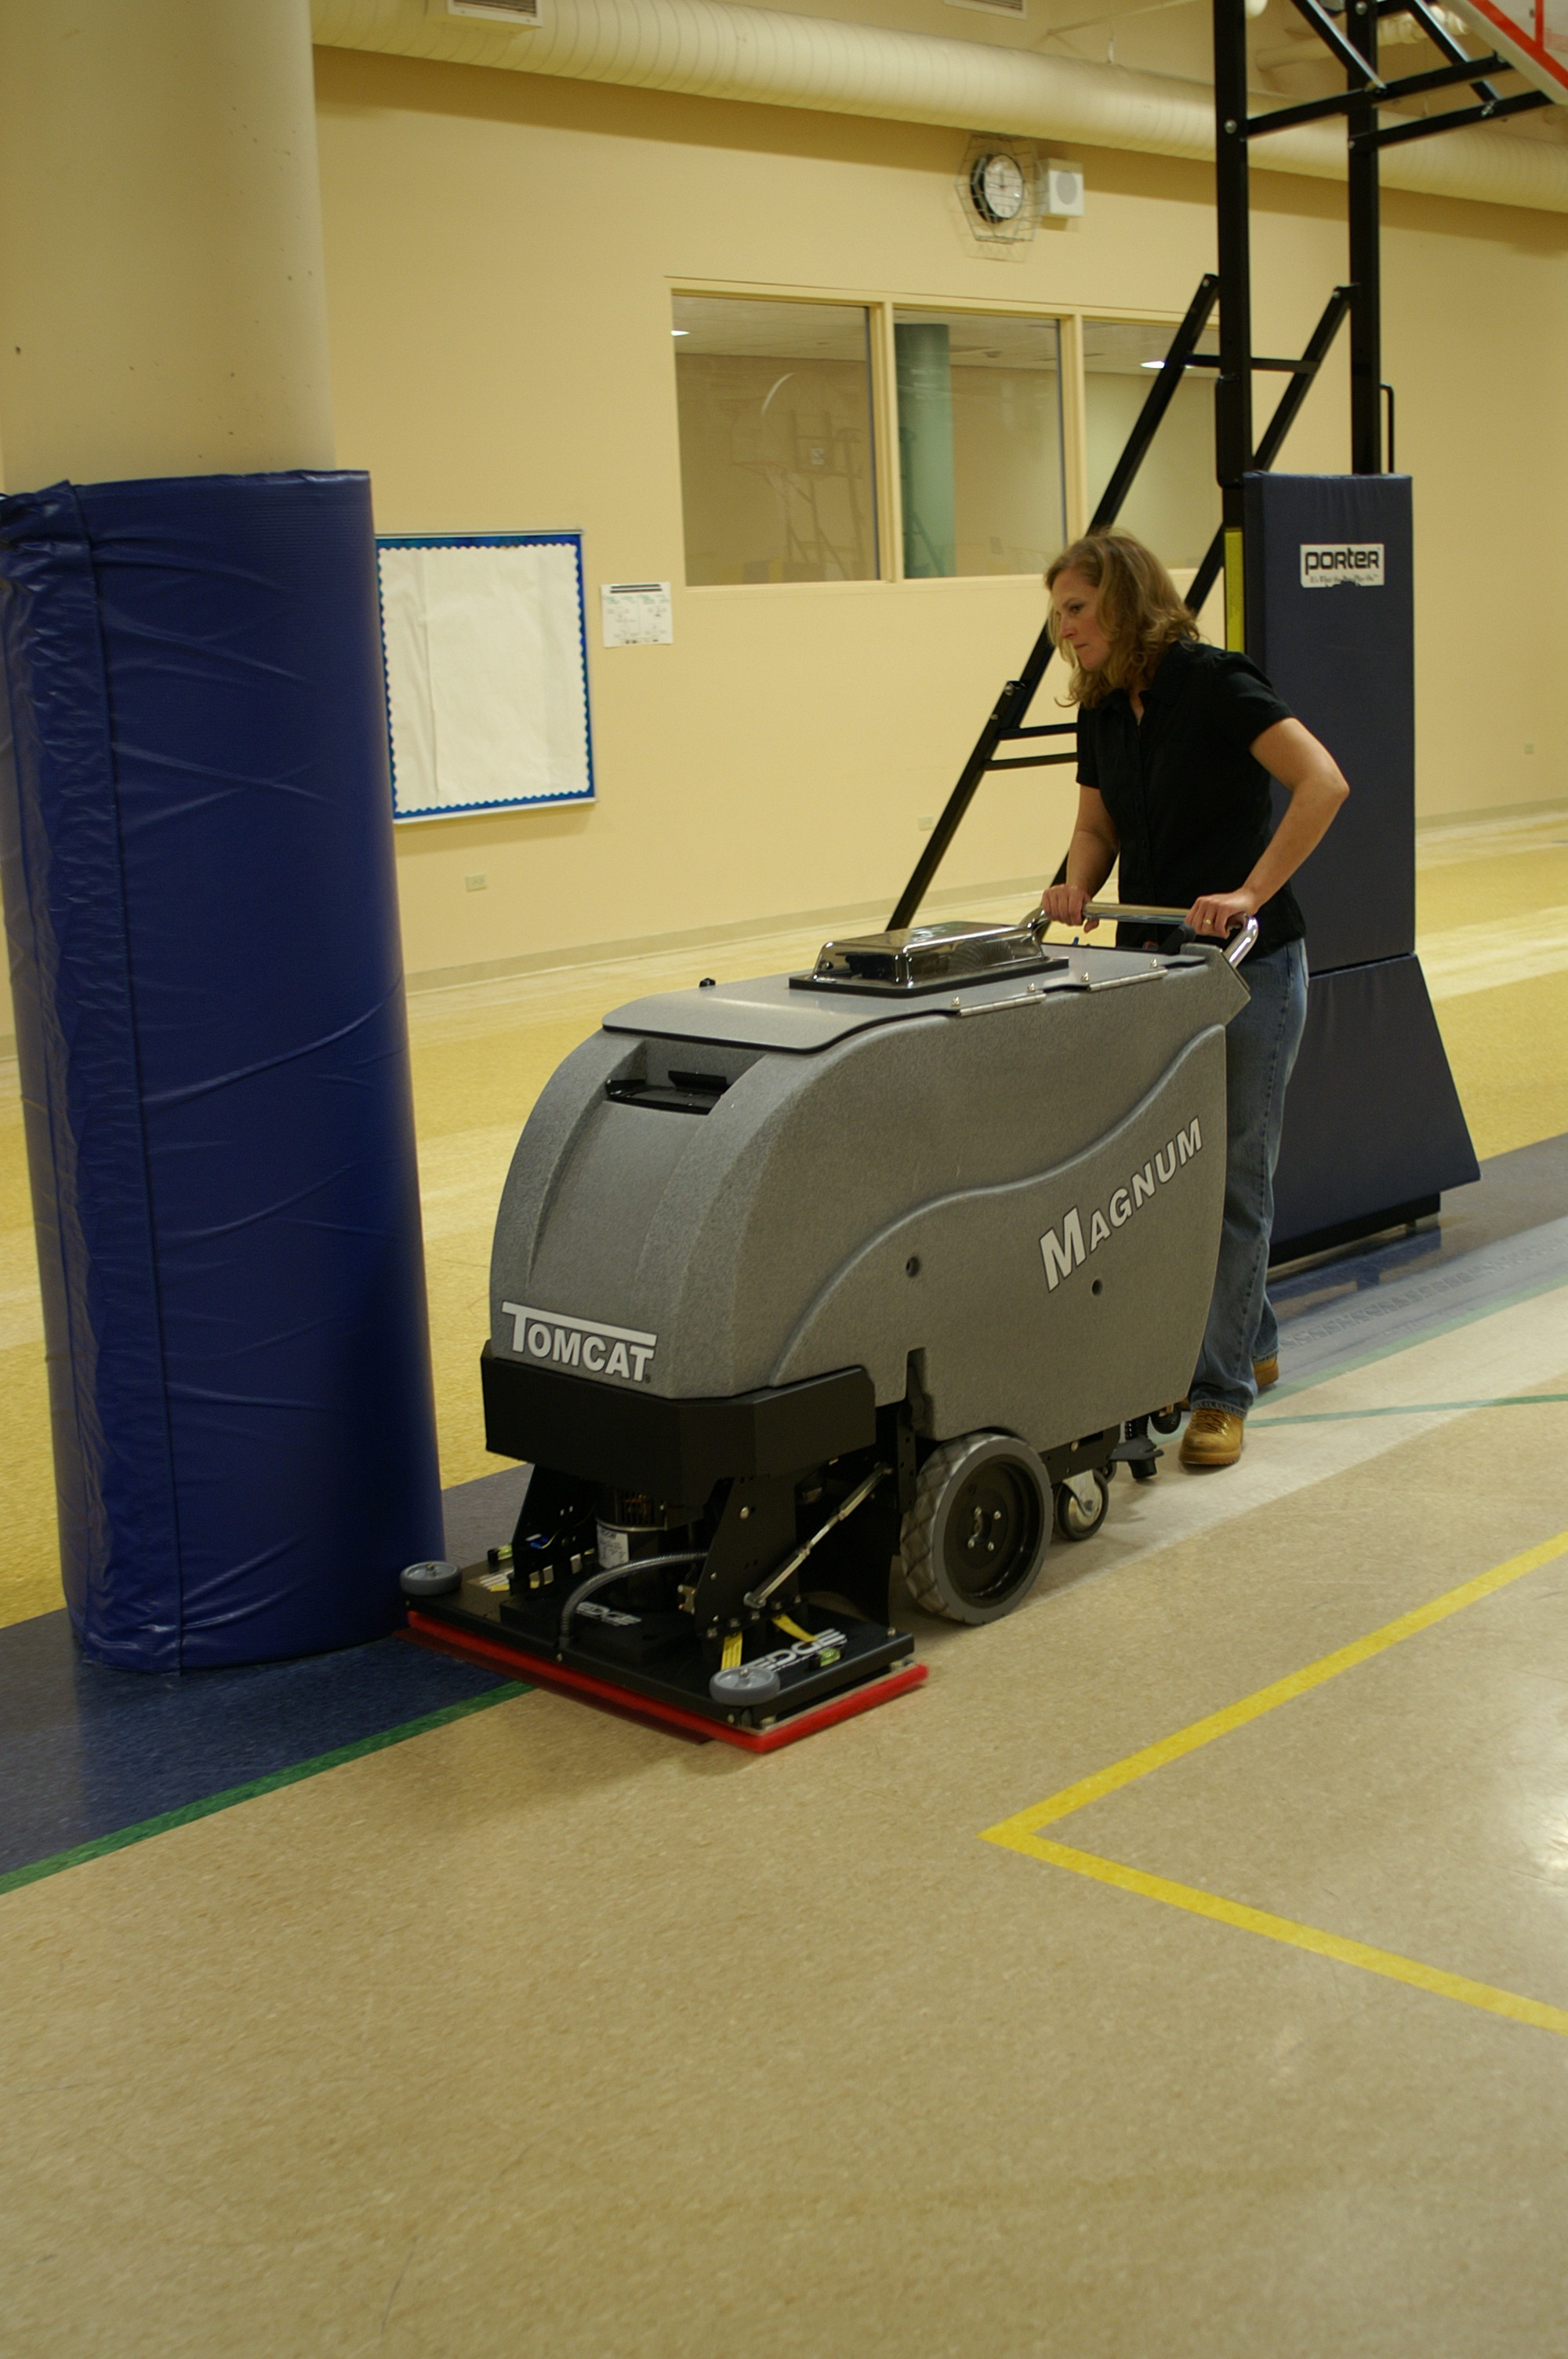 microrider walk mach dinosauriens floor info dryer scrubbers minimag type on tomcat sweeper amp scrubber floors behind other pro commercial ride equipment fn grabfile